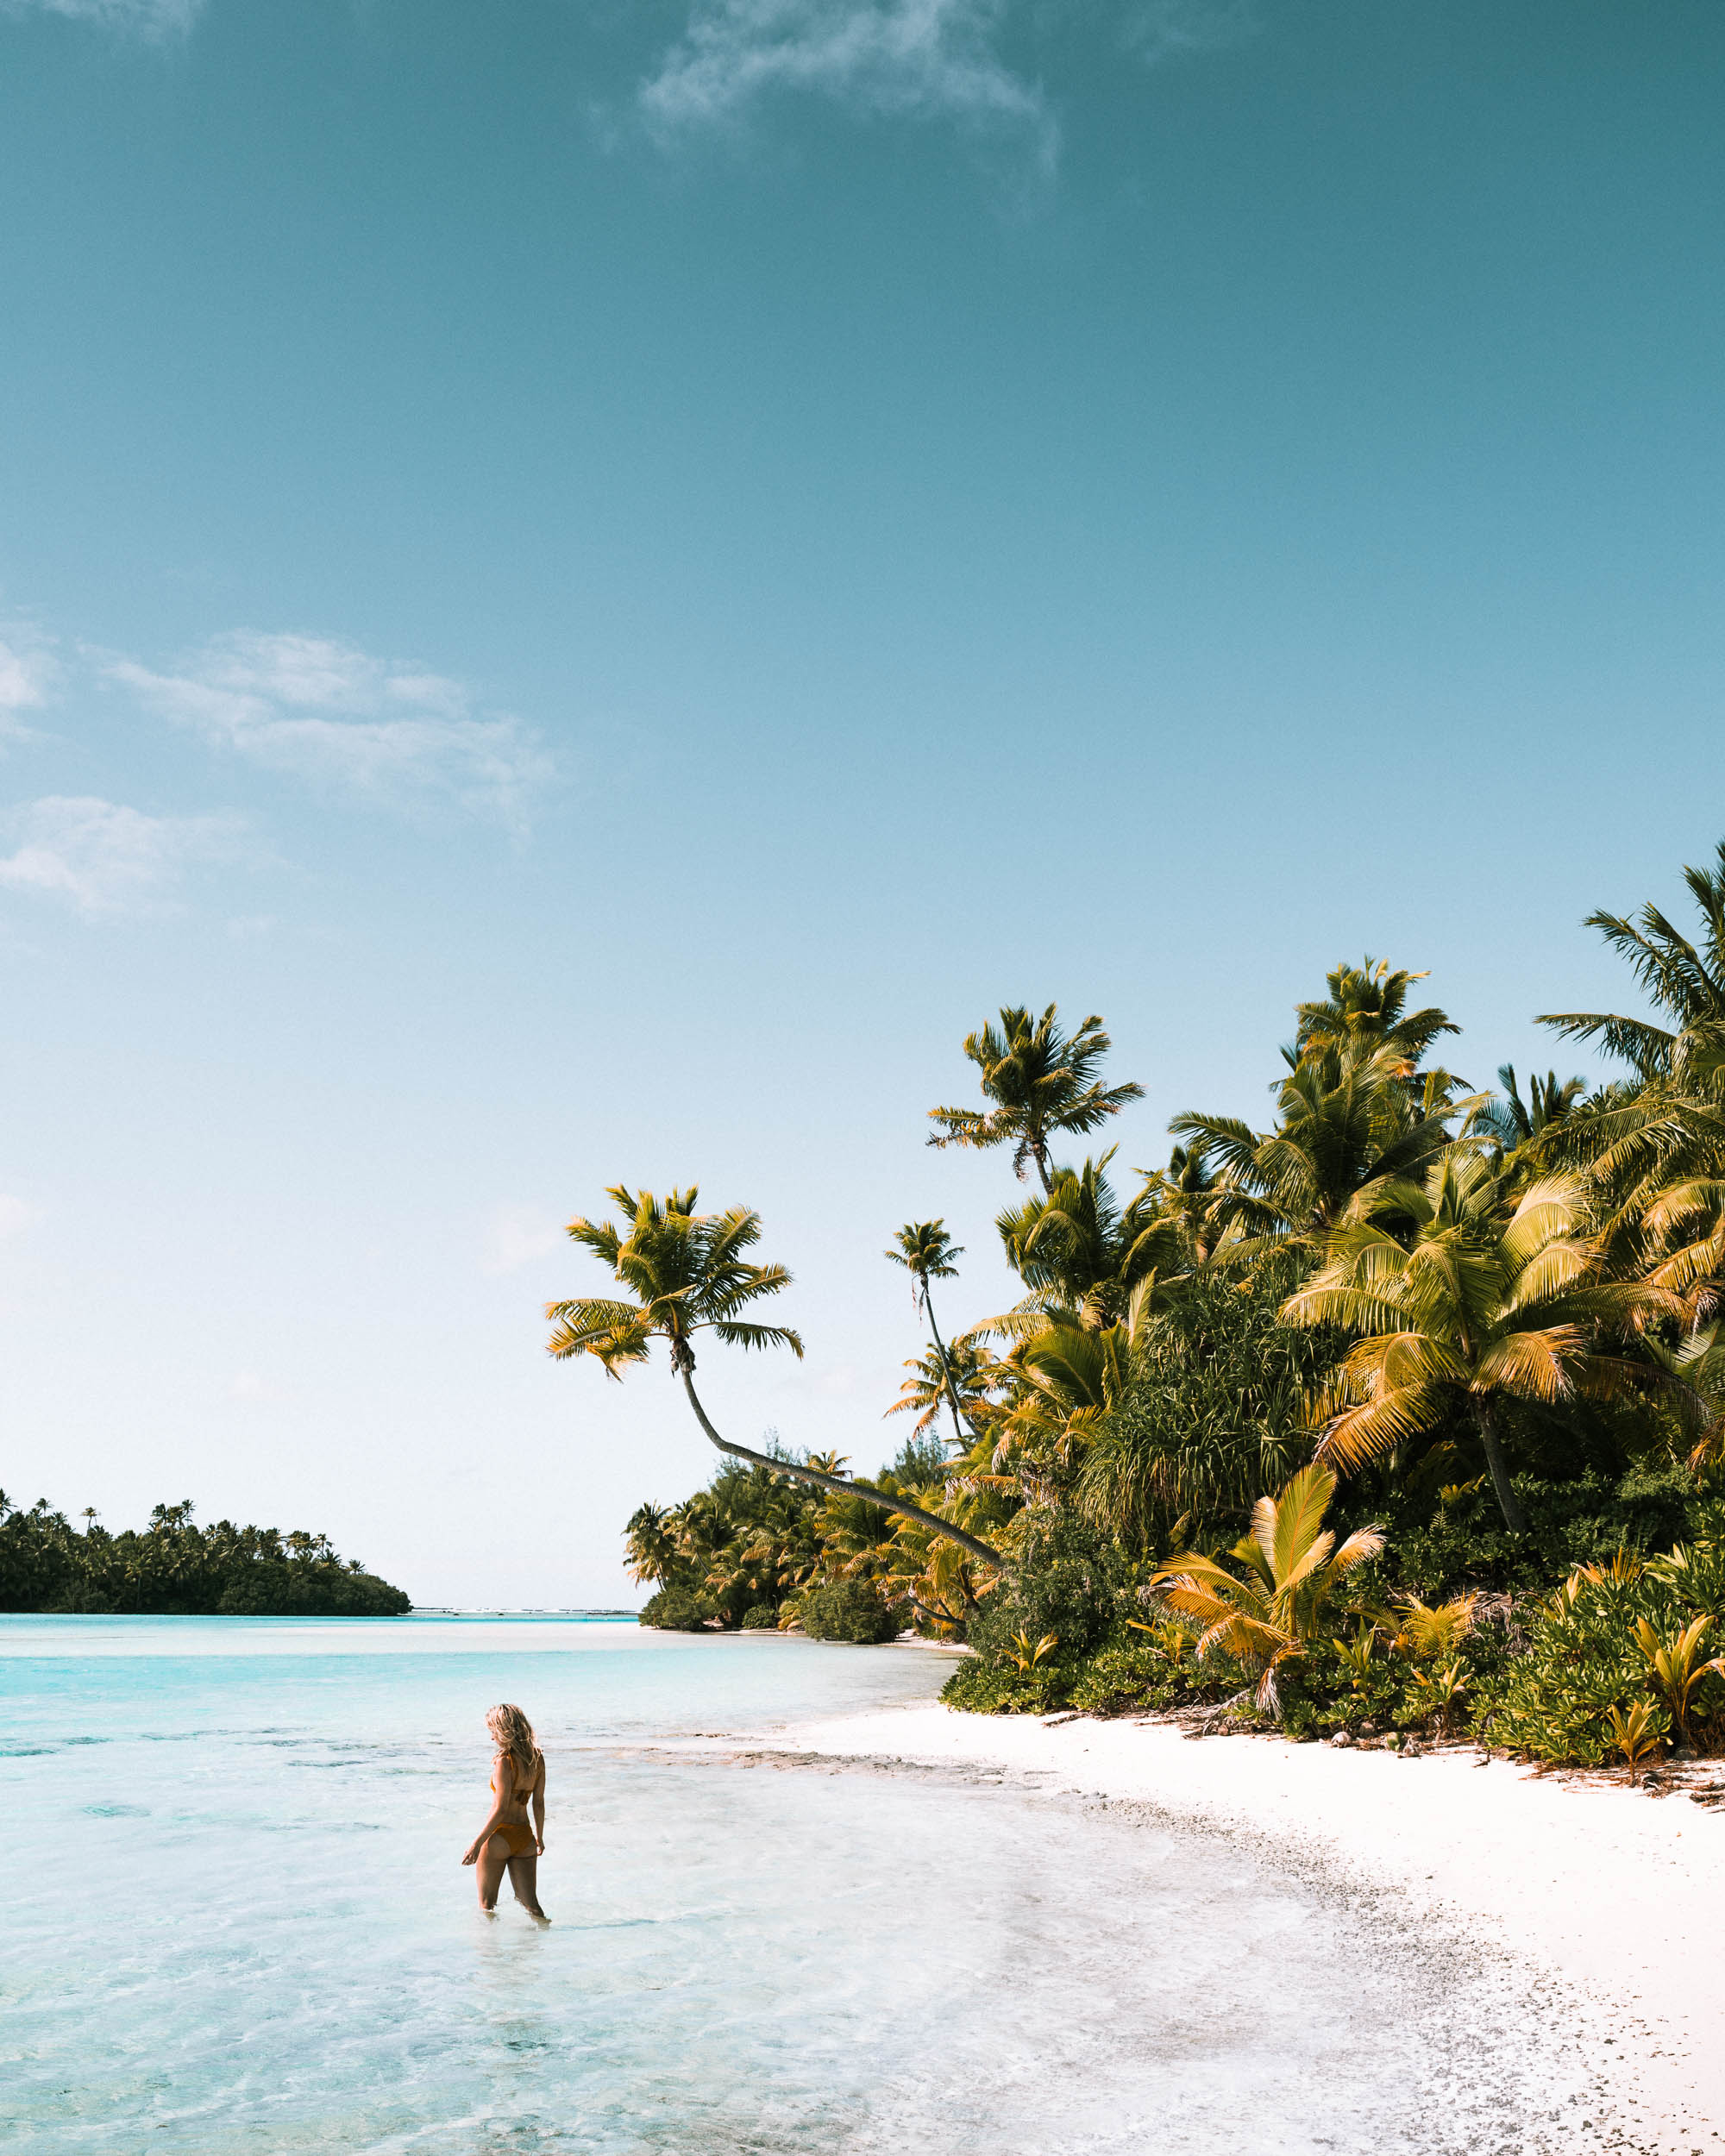 White sand beaches and palm trees and lying in the sand at One Foot Island in the Cook Islands